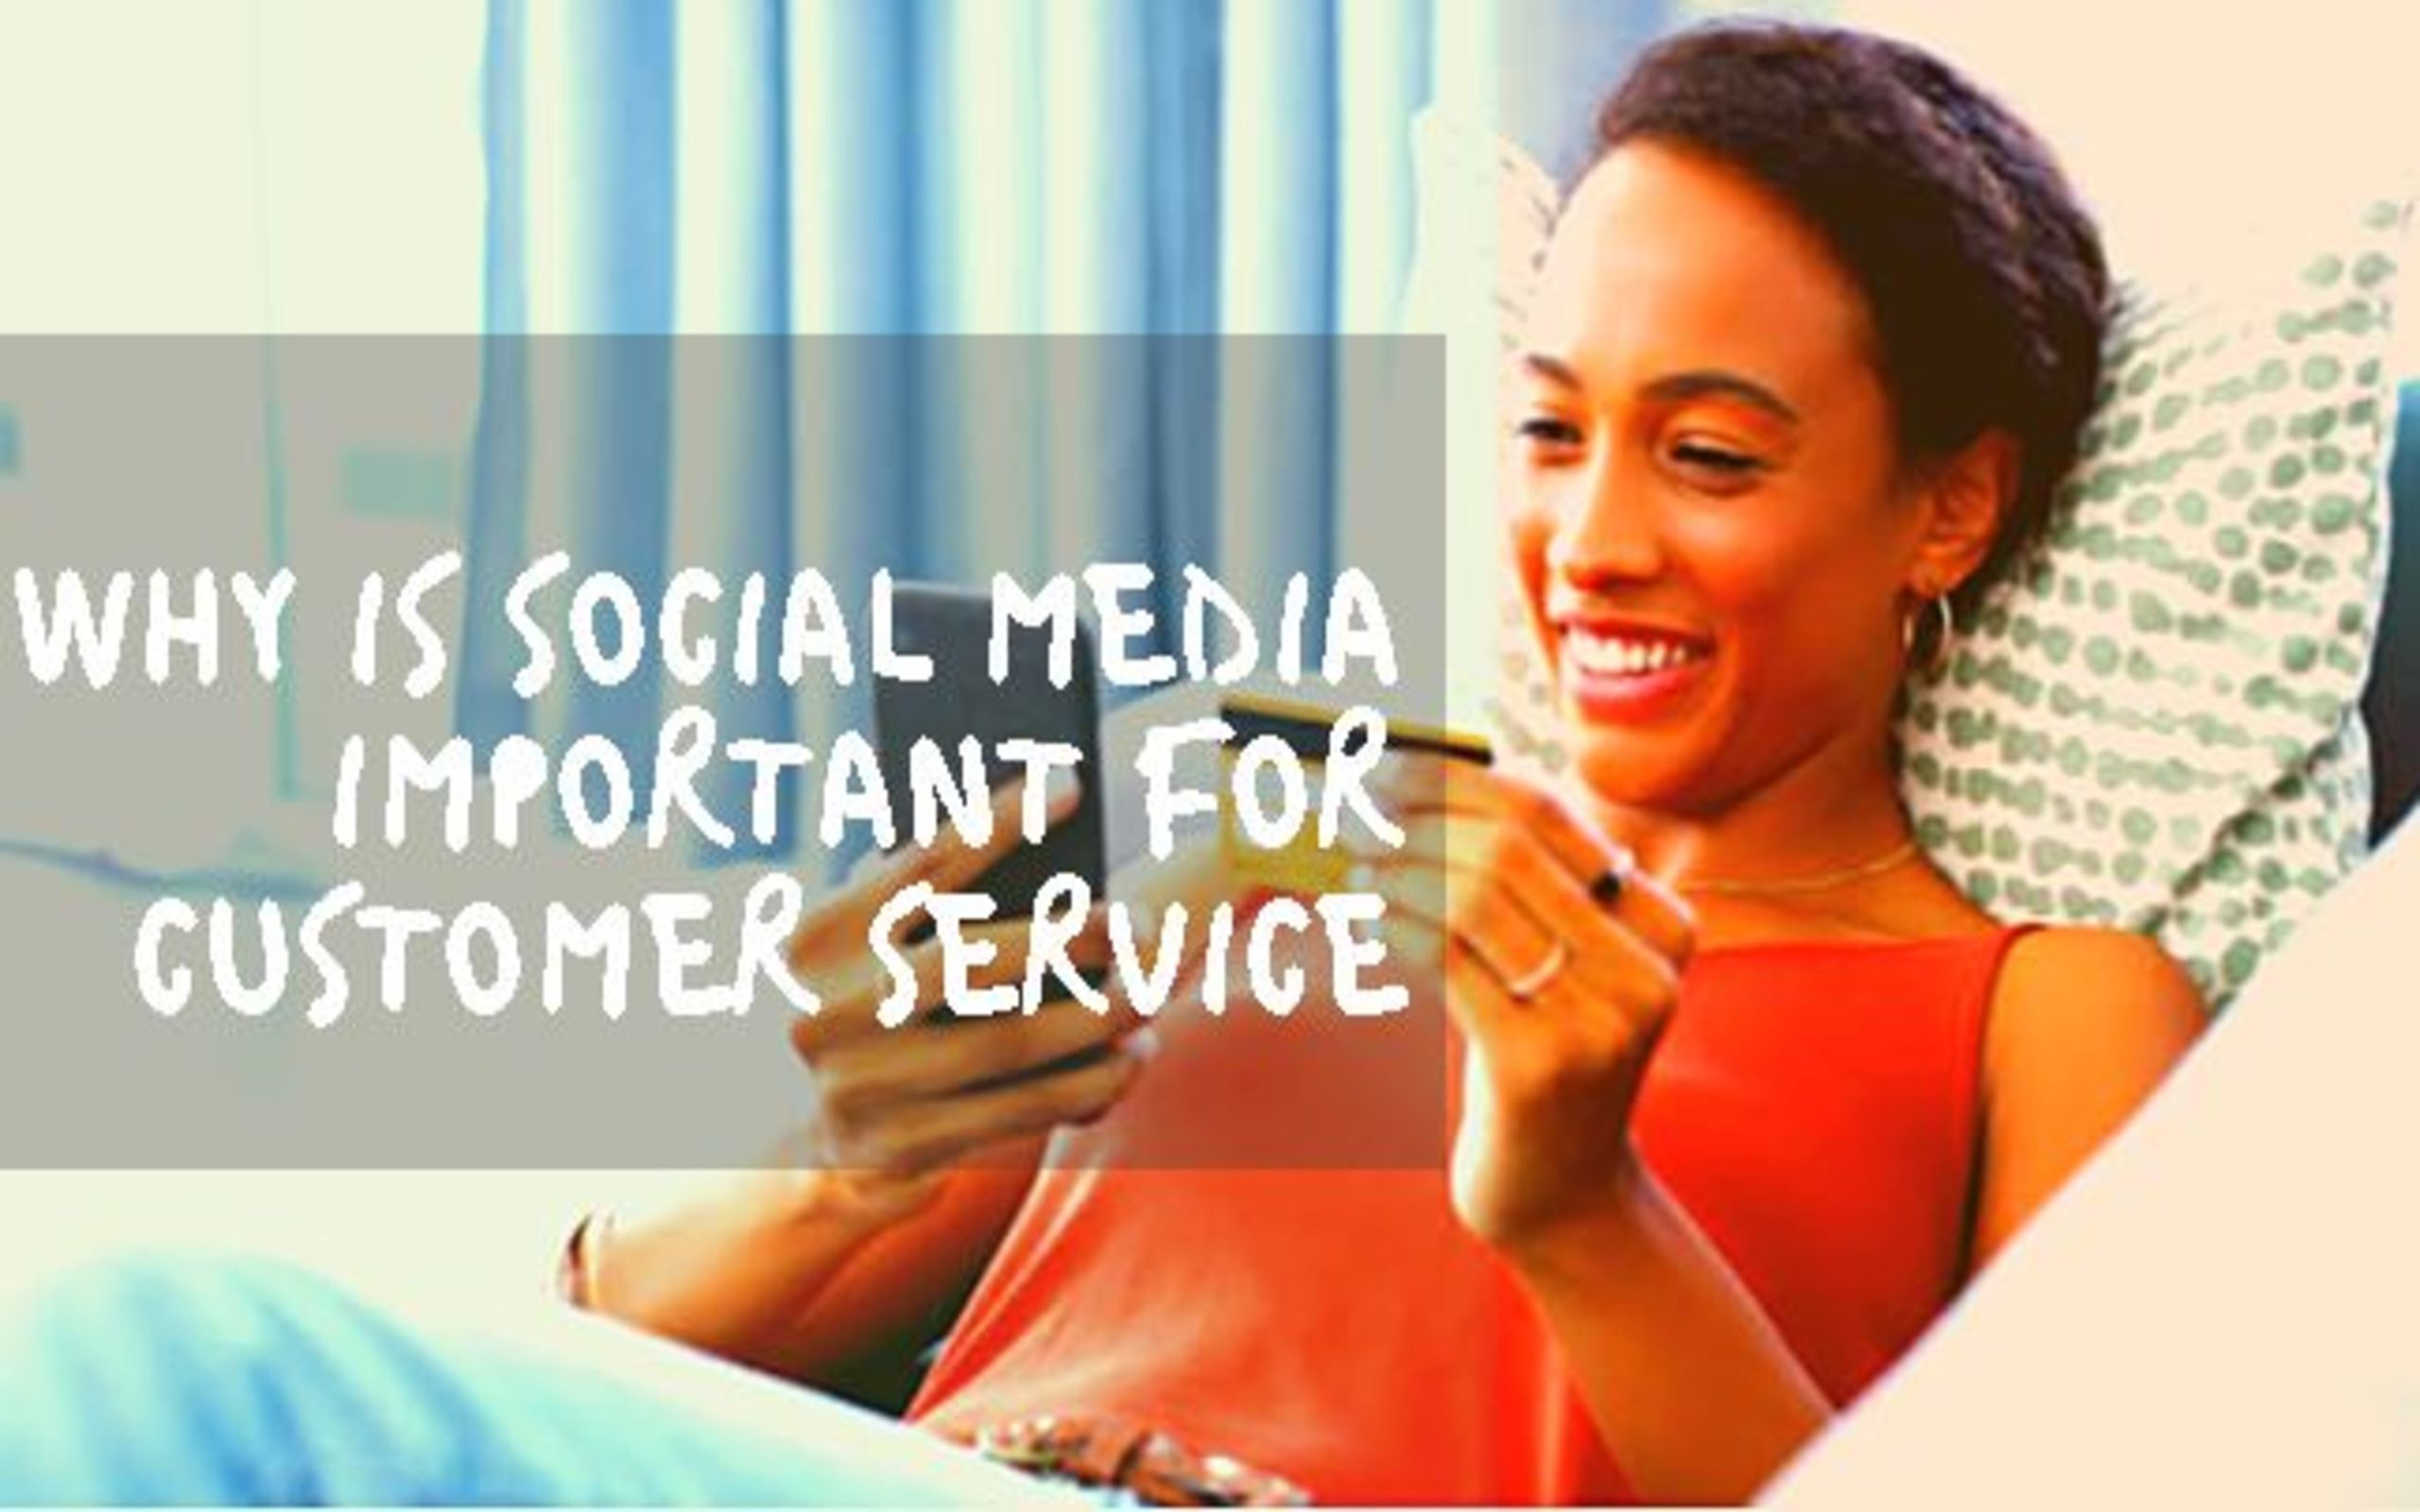 Why Is Social Media Important for Customer Service